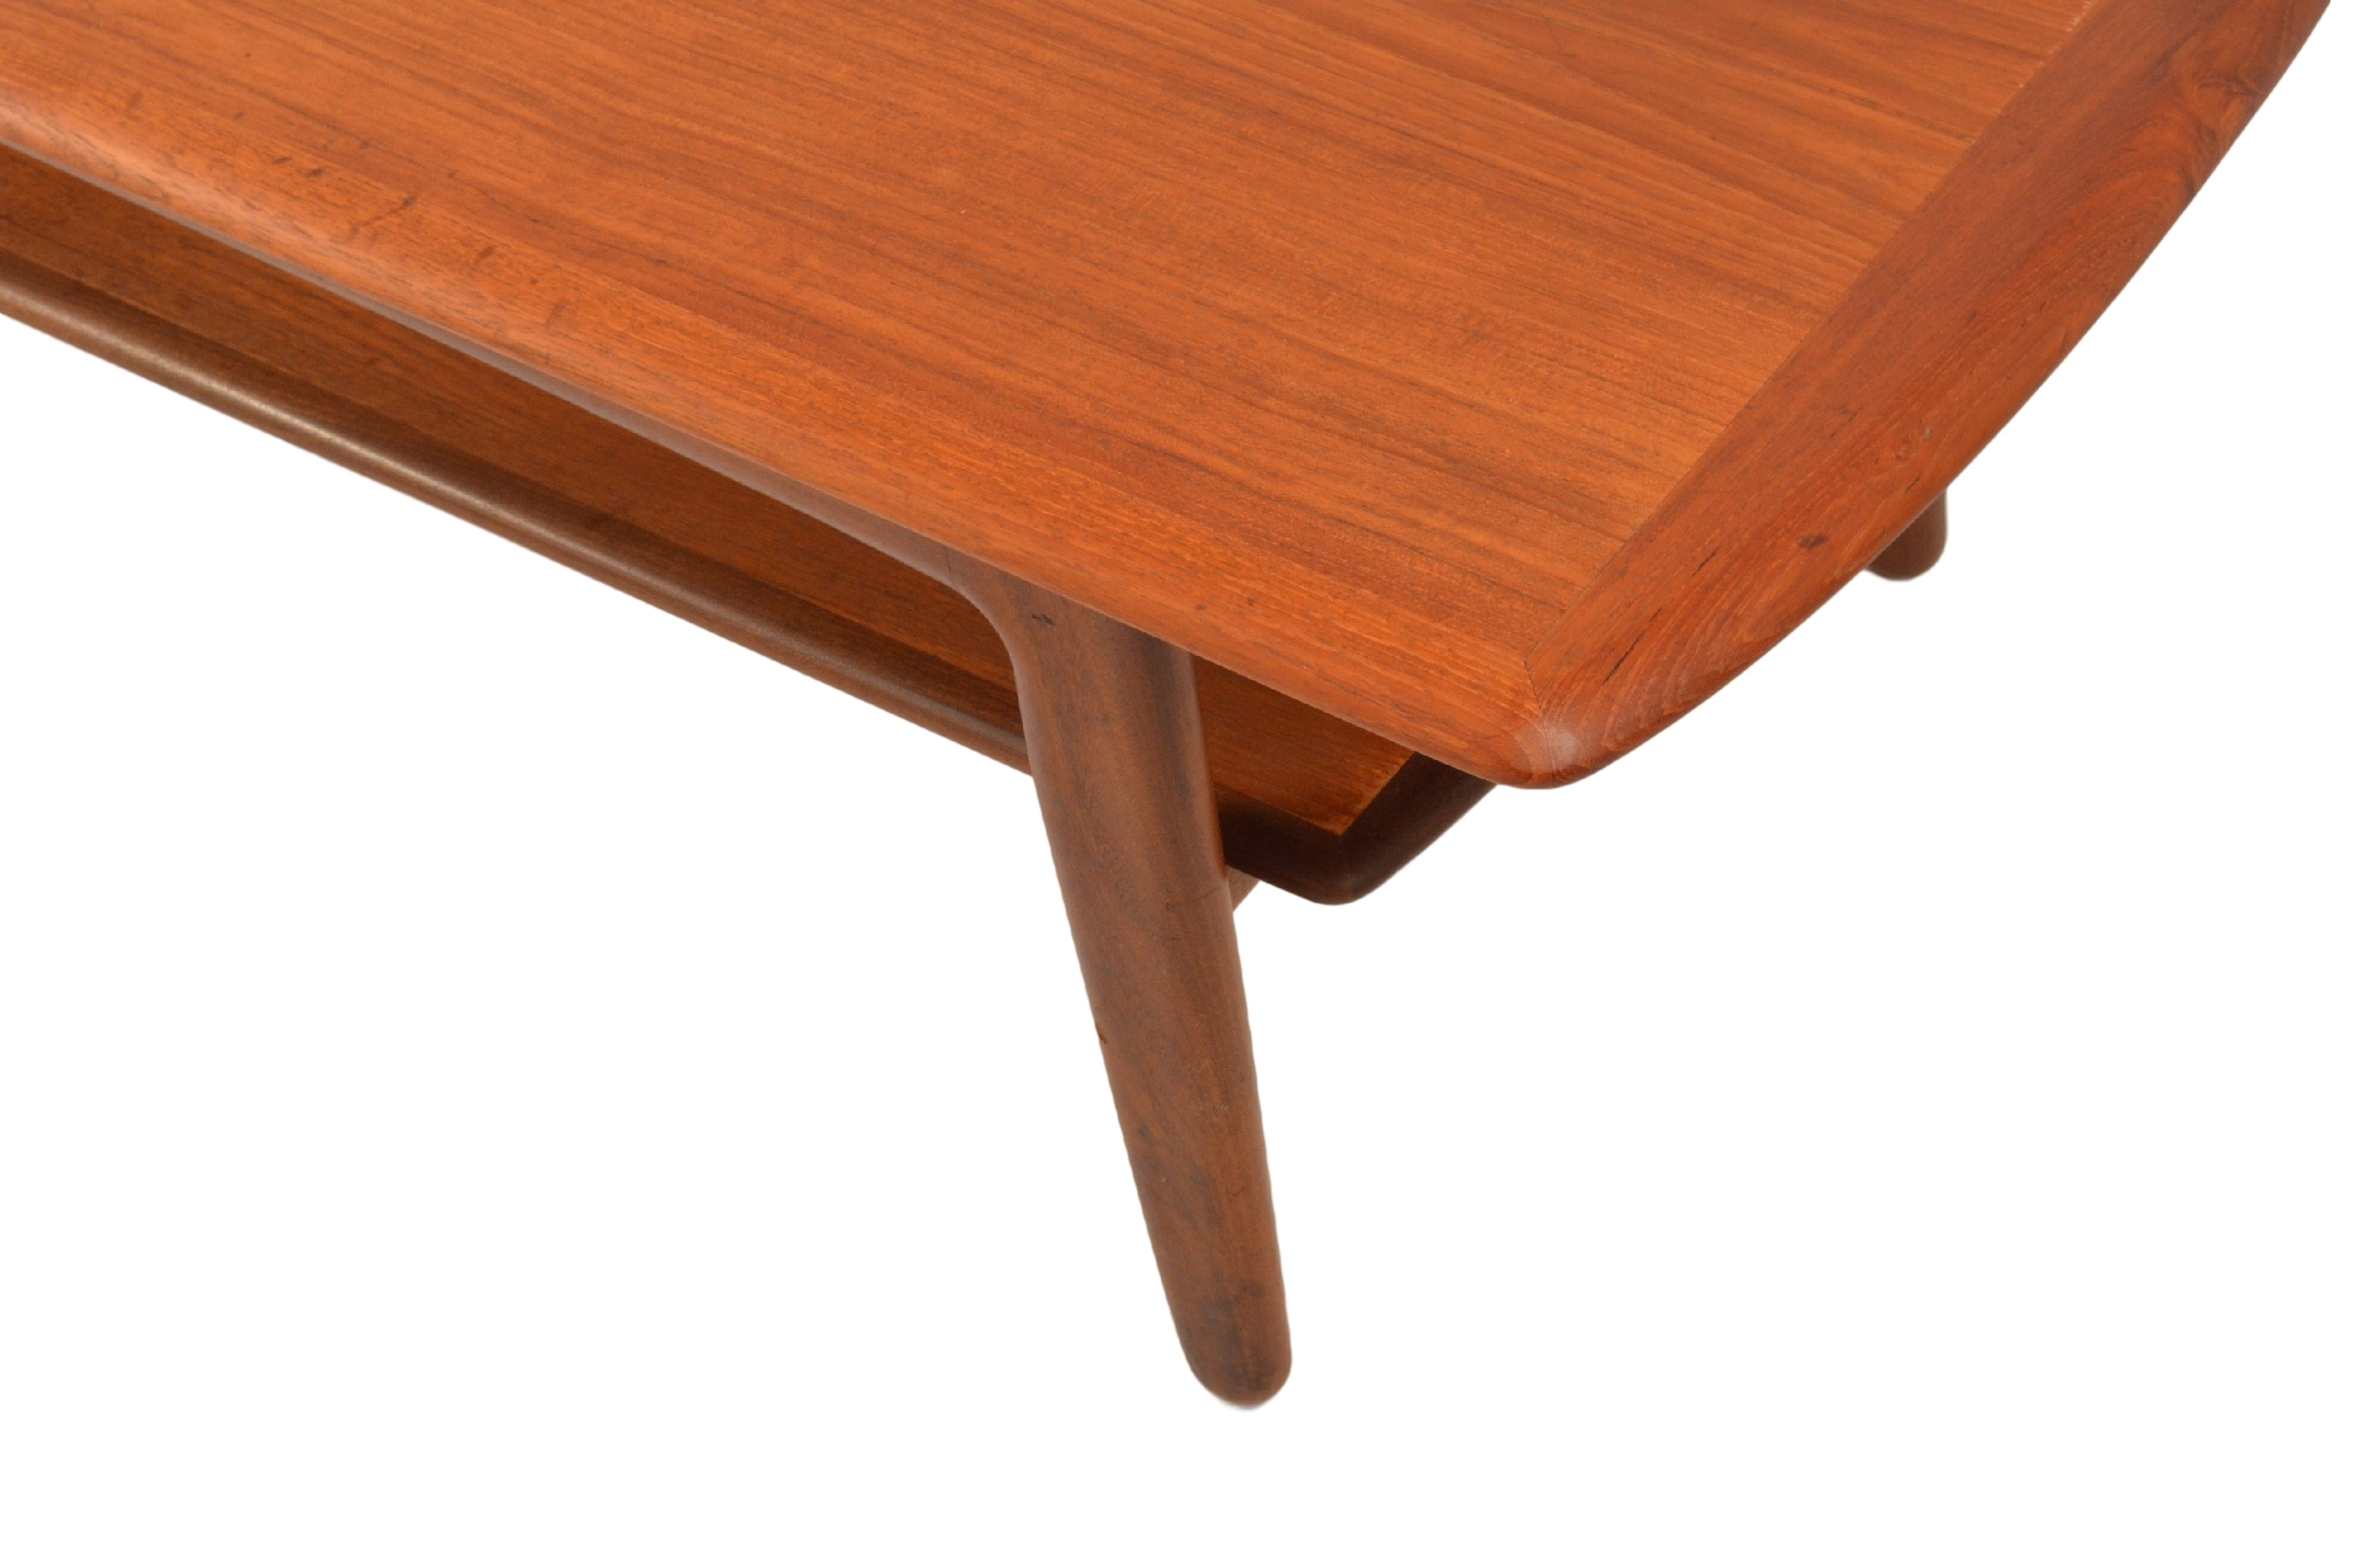 Mid Century Svend A Madsen Teak Coffee Table : DSC01011clippedrev1jpeg from www.retropassion21.com size 2513 x 1669 jpeg 654kB